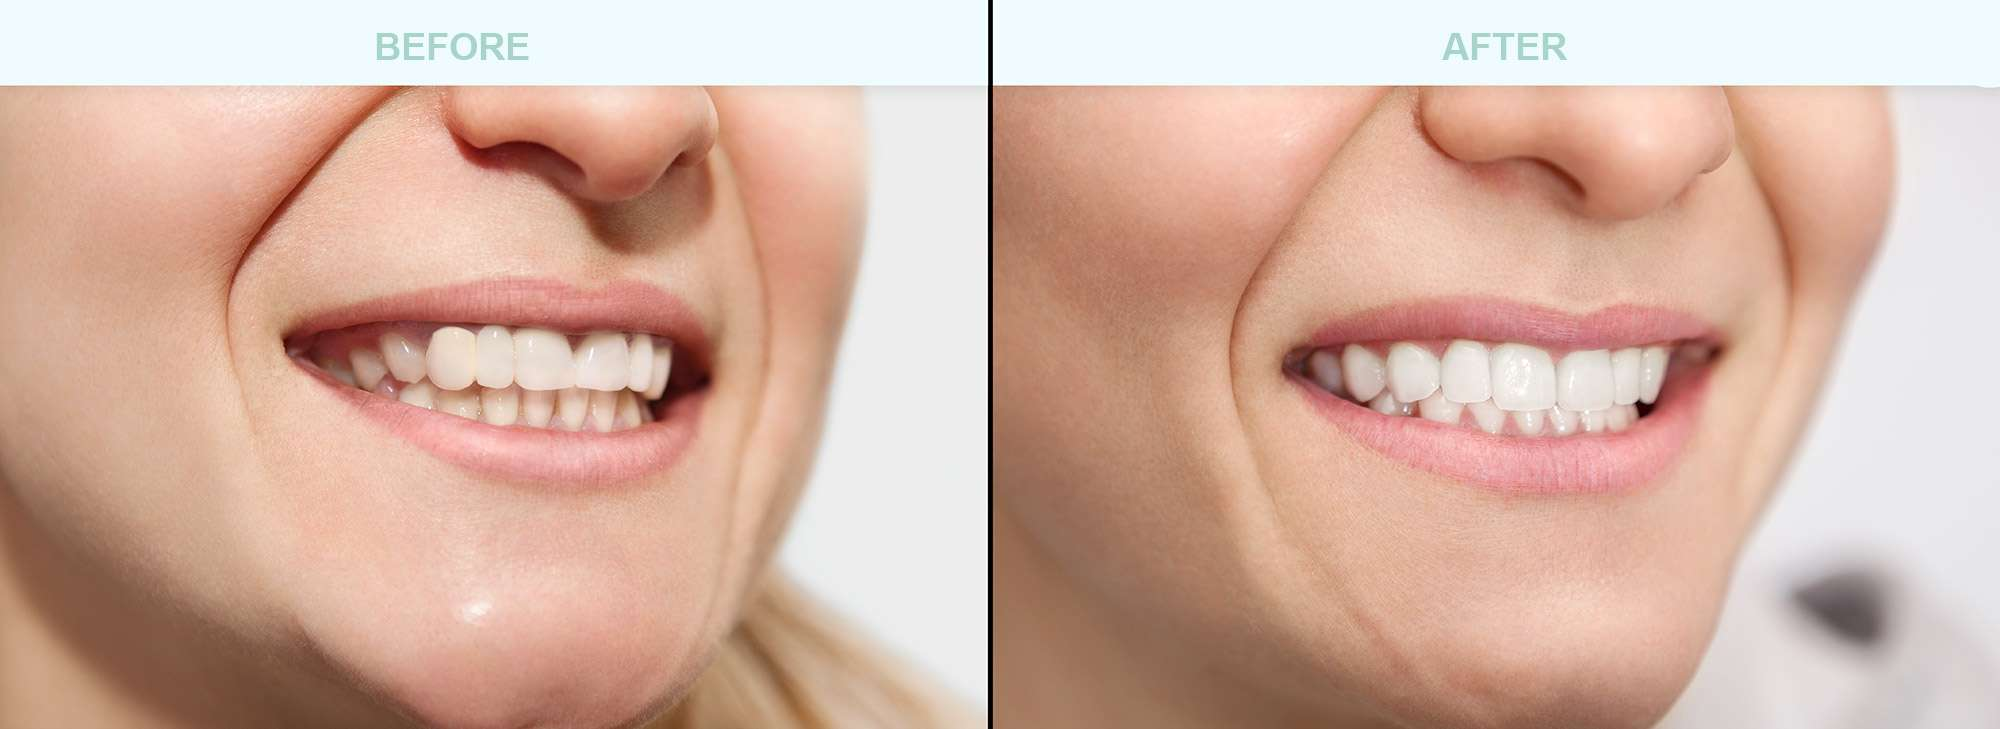 before-after-cosmetic-dentistry